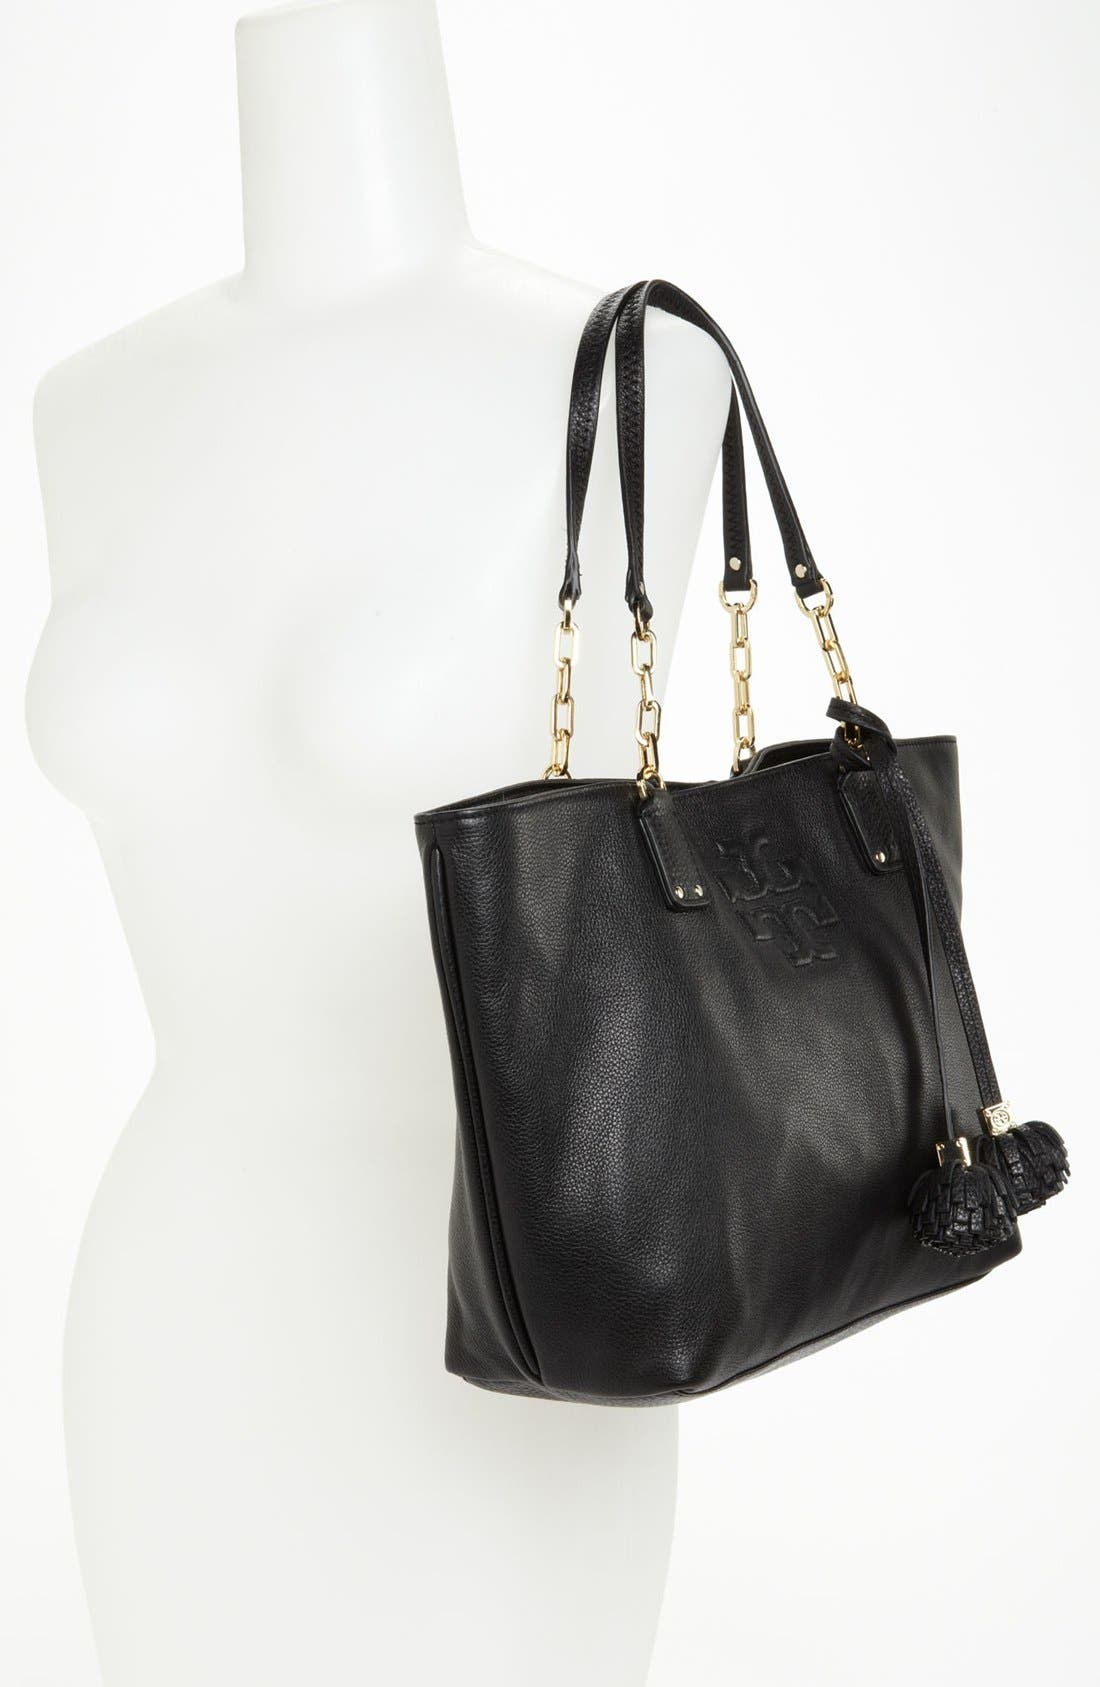 Alternate Image 2  - Tory Burch 'Thea - Small' Leather Tote